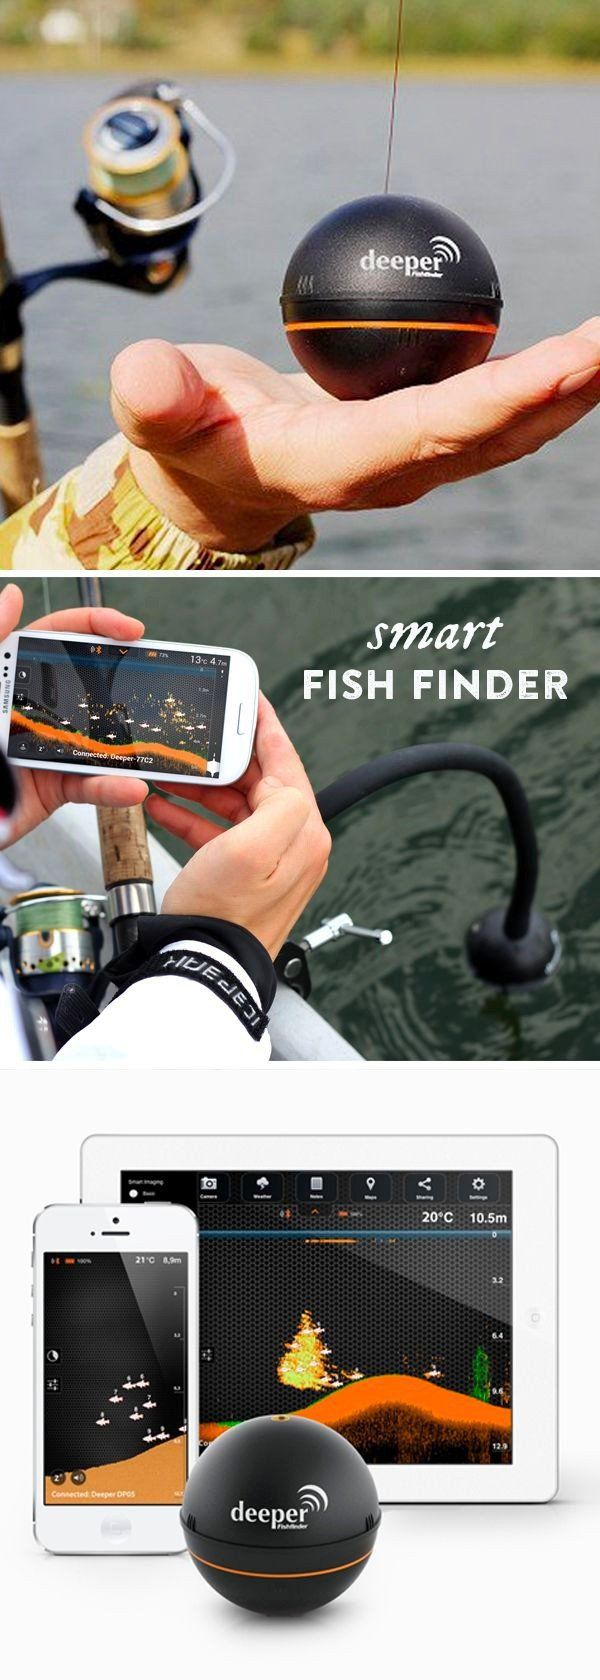 Light, portable, and ready to deliver details on the waters below straight to your smartphone or tablet.